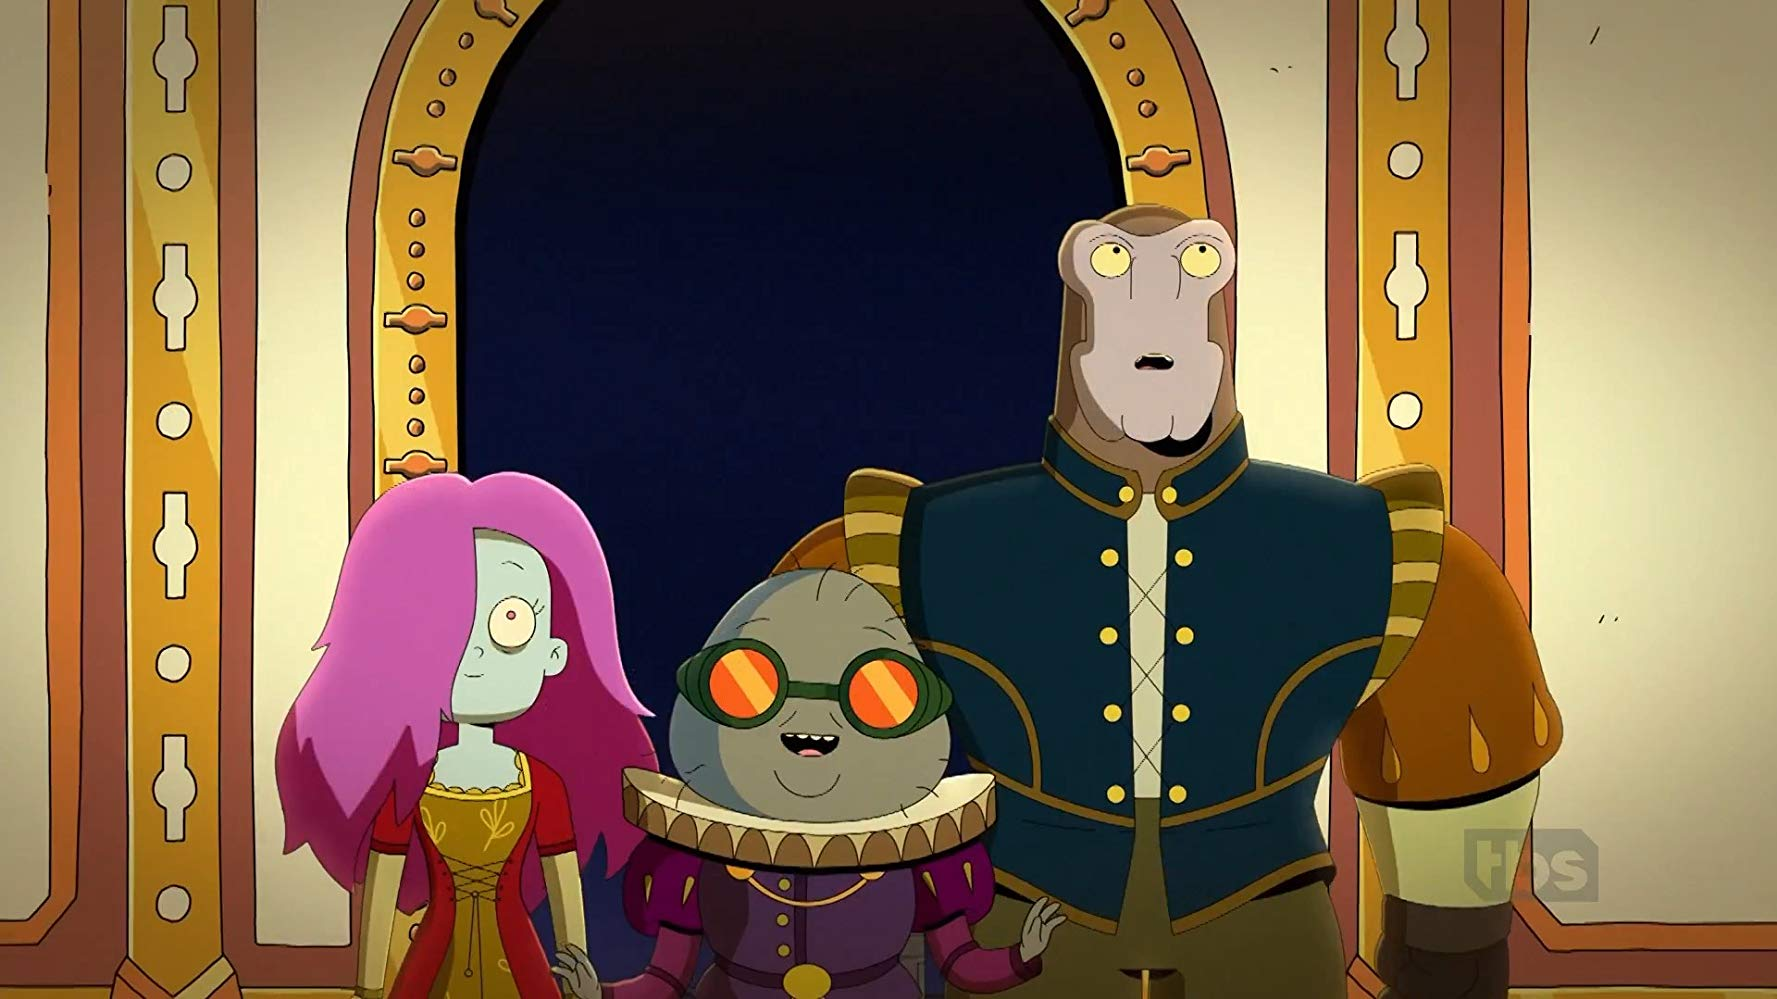 Final Space Stagione 2 - 5